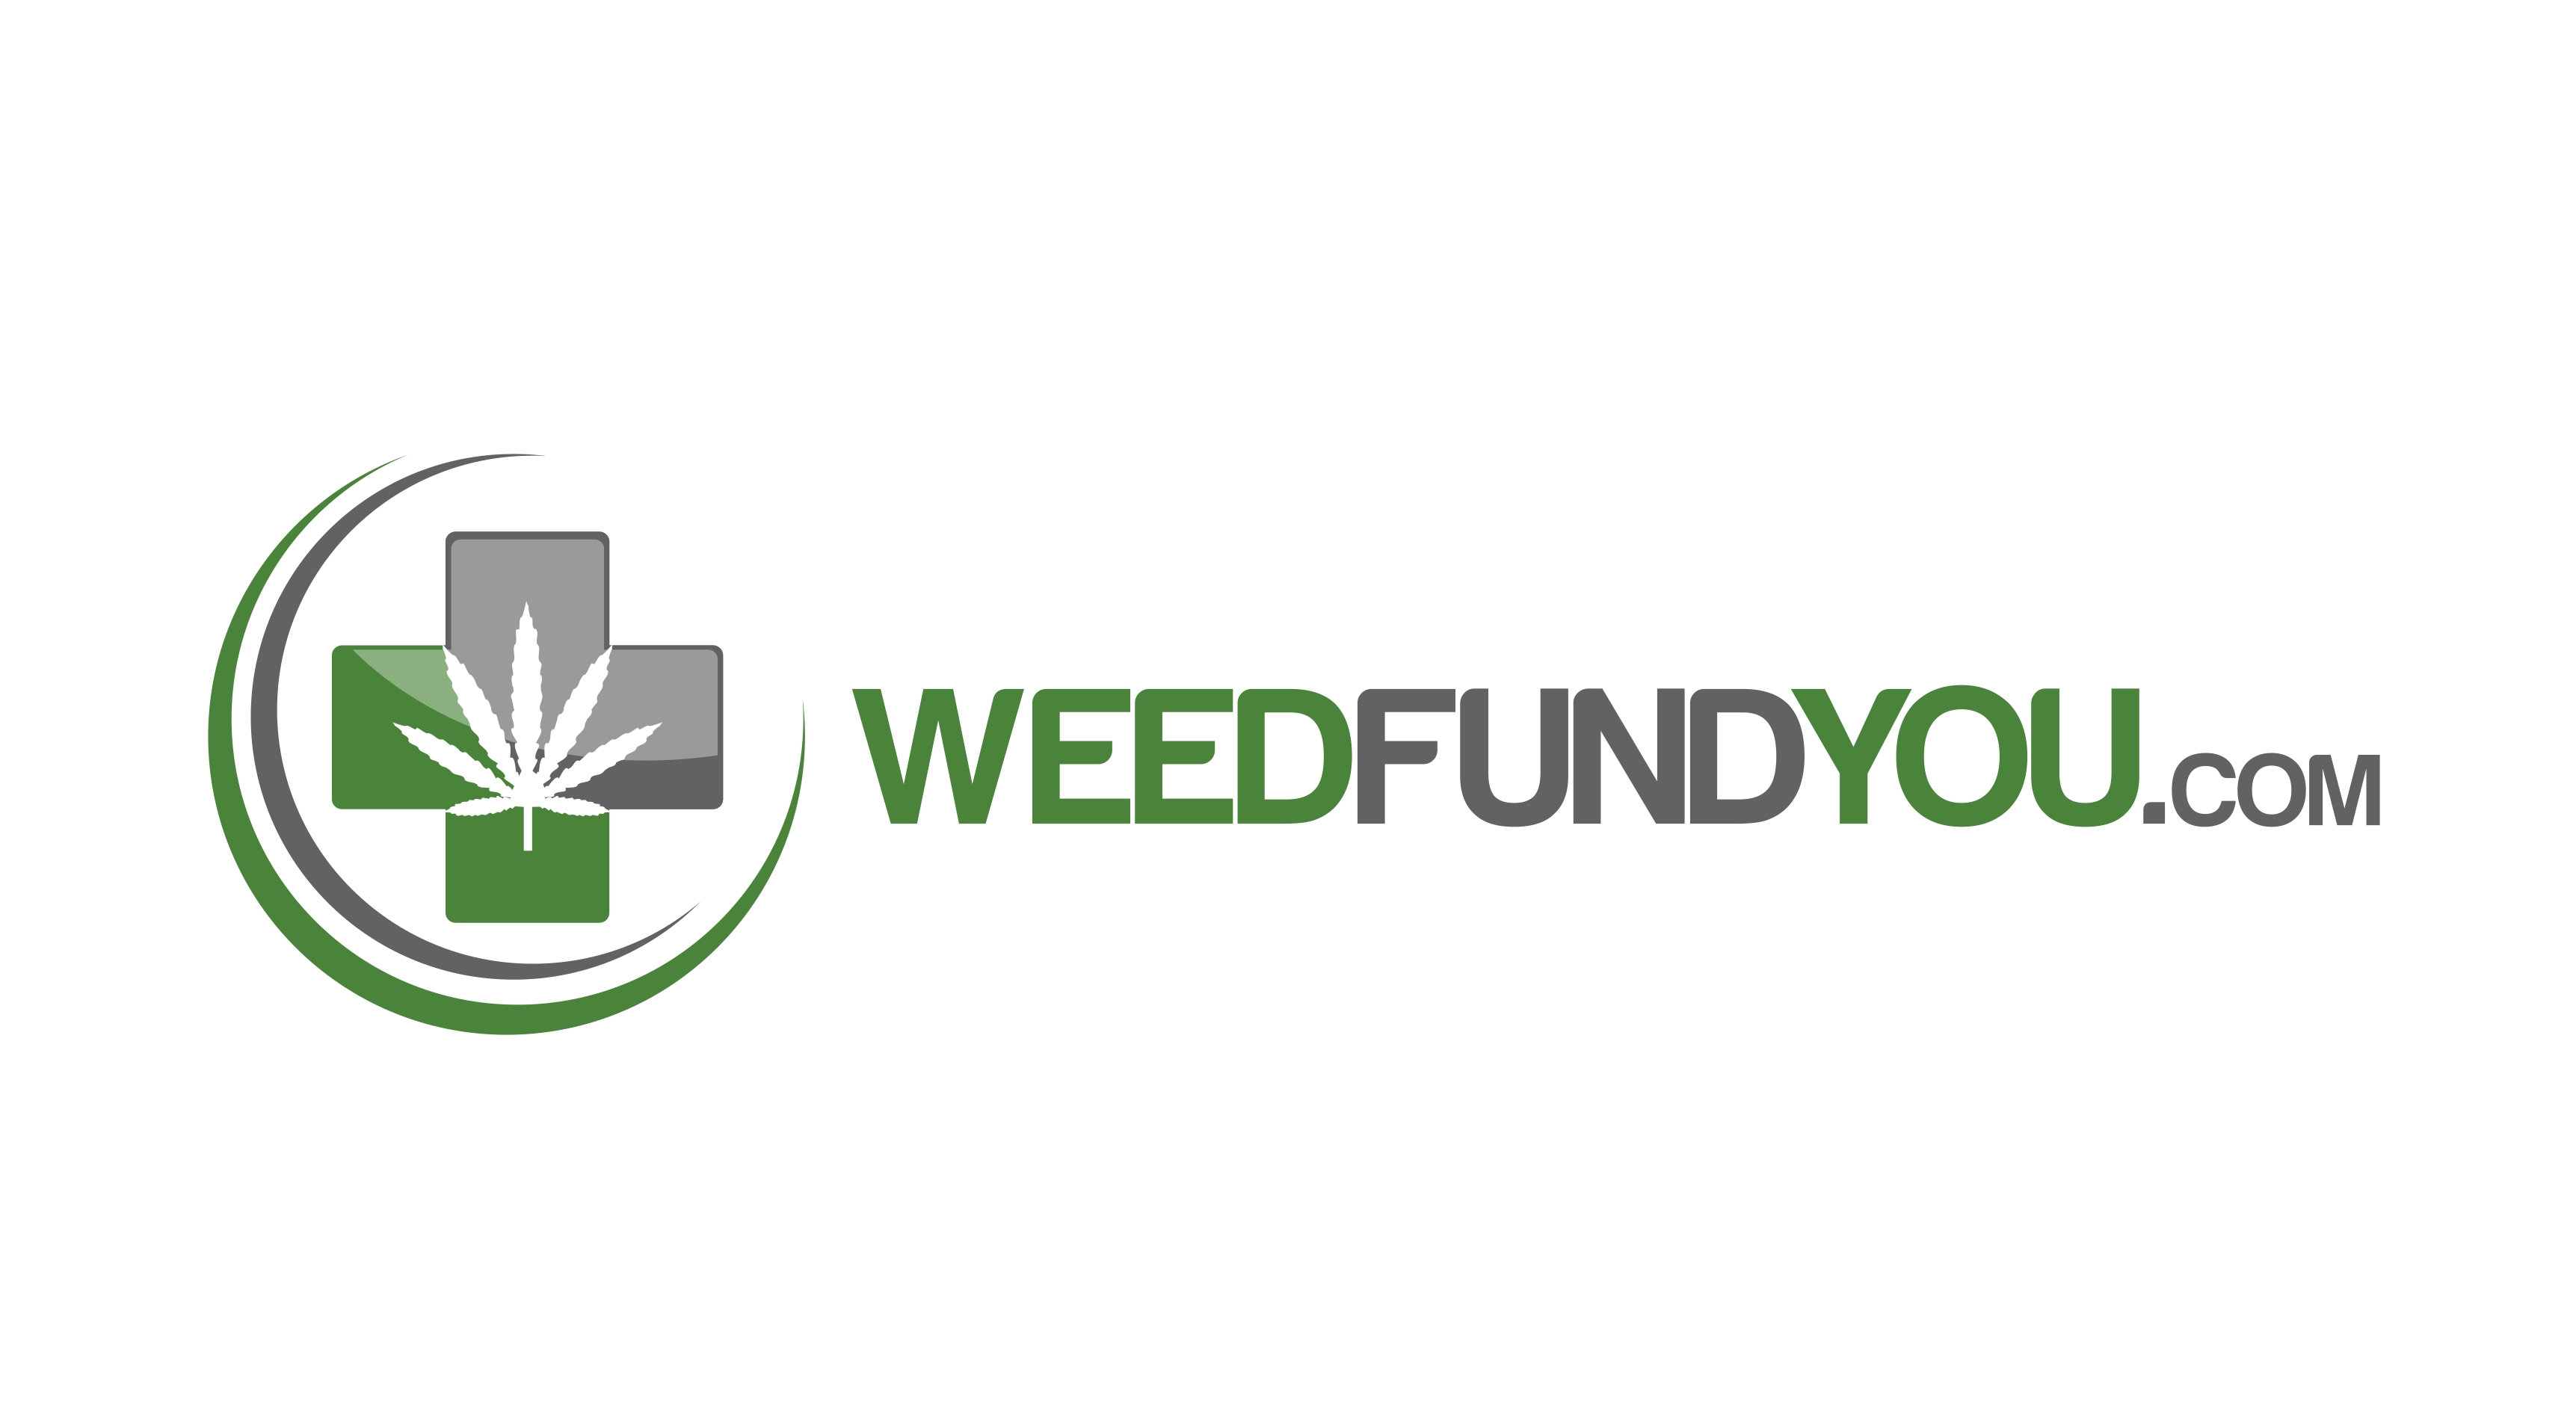 Logo for Weedfundyou